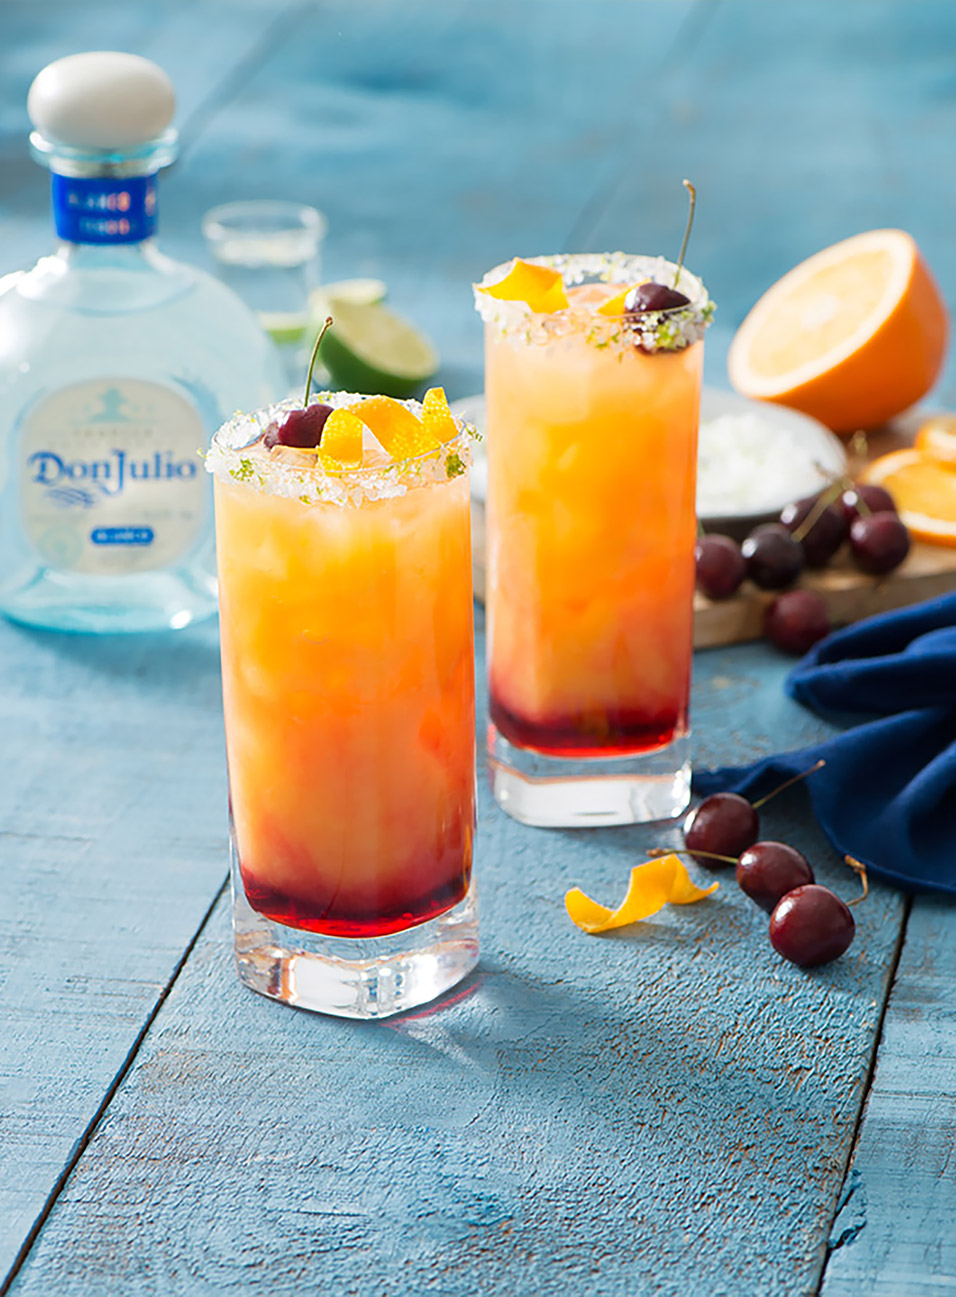 Tequila Sunrise drink made with Don Julio Blanco Tequila